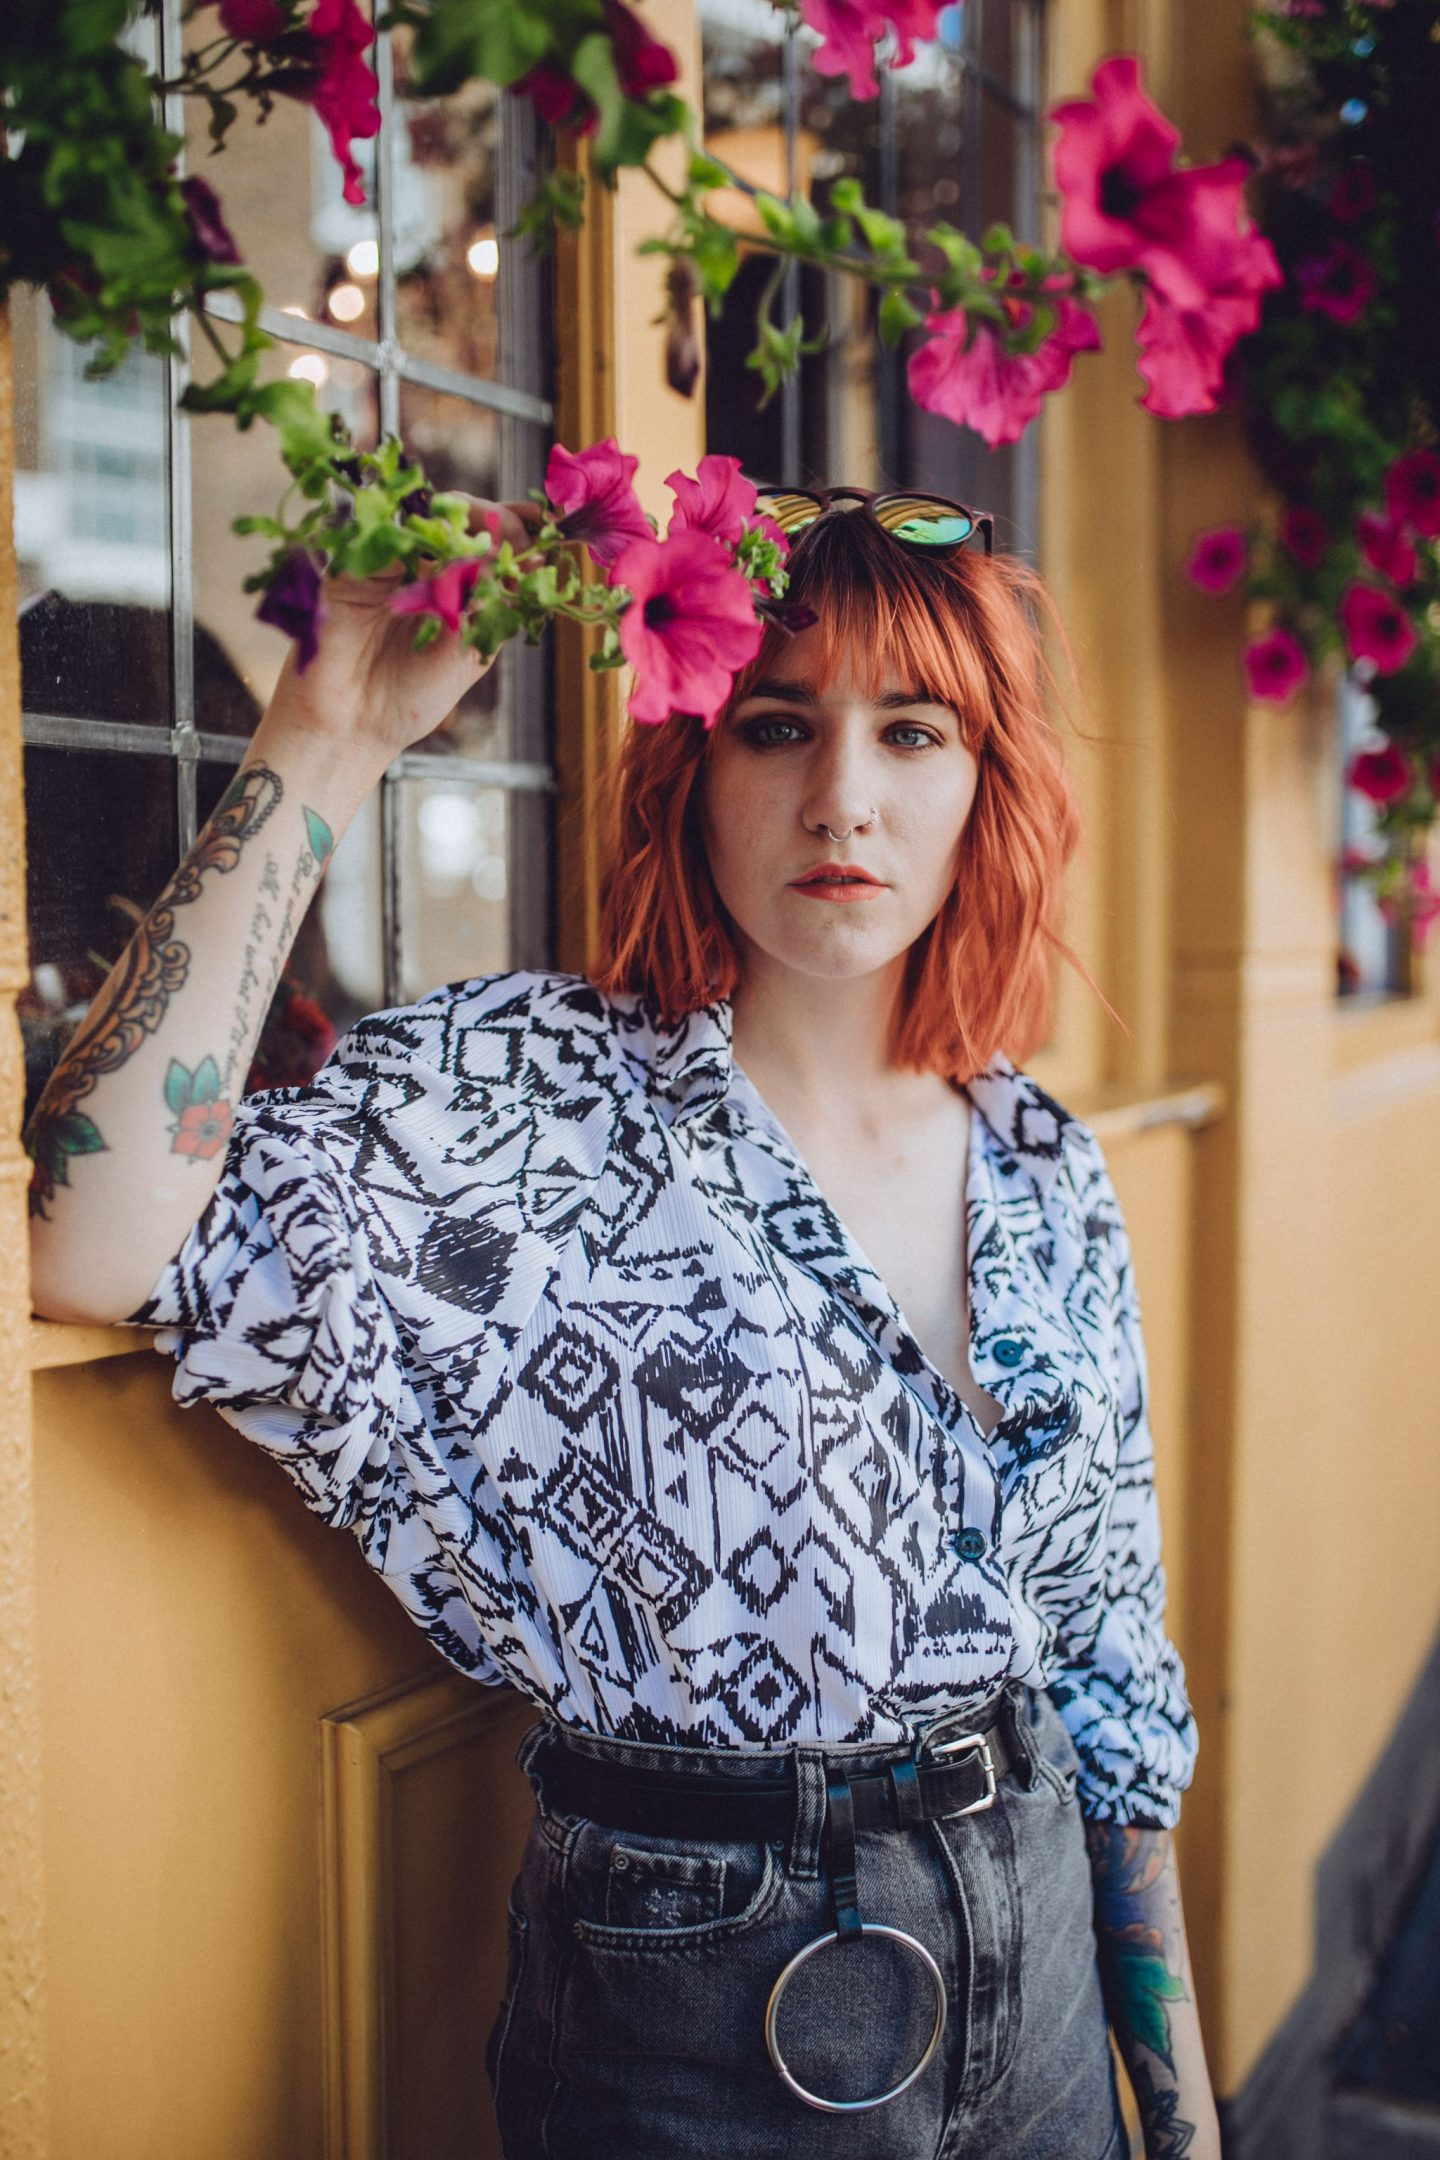 Buying Vintage In A World Of Fast Fashion - close up in flowers